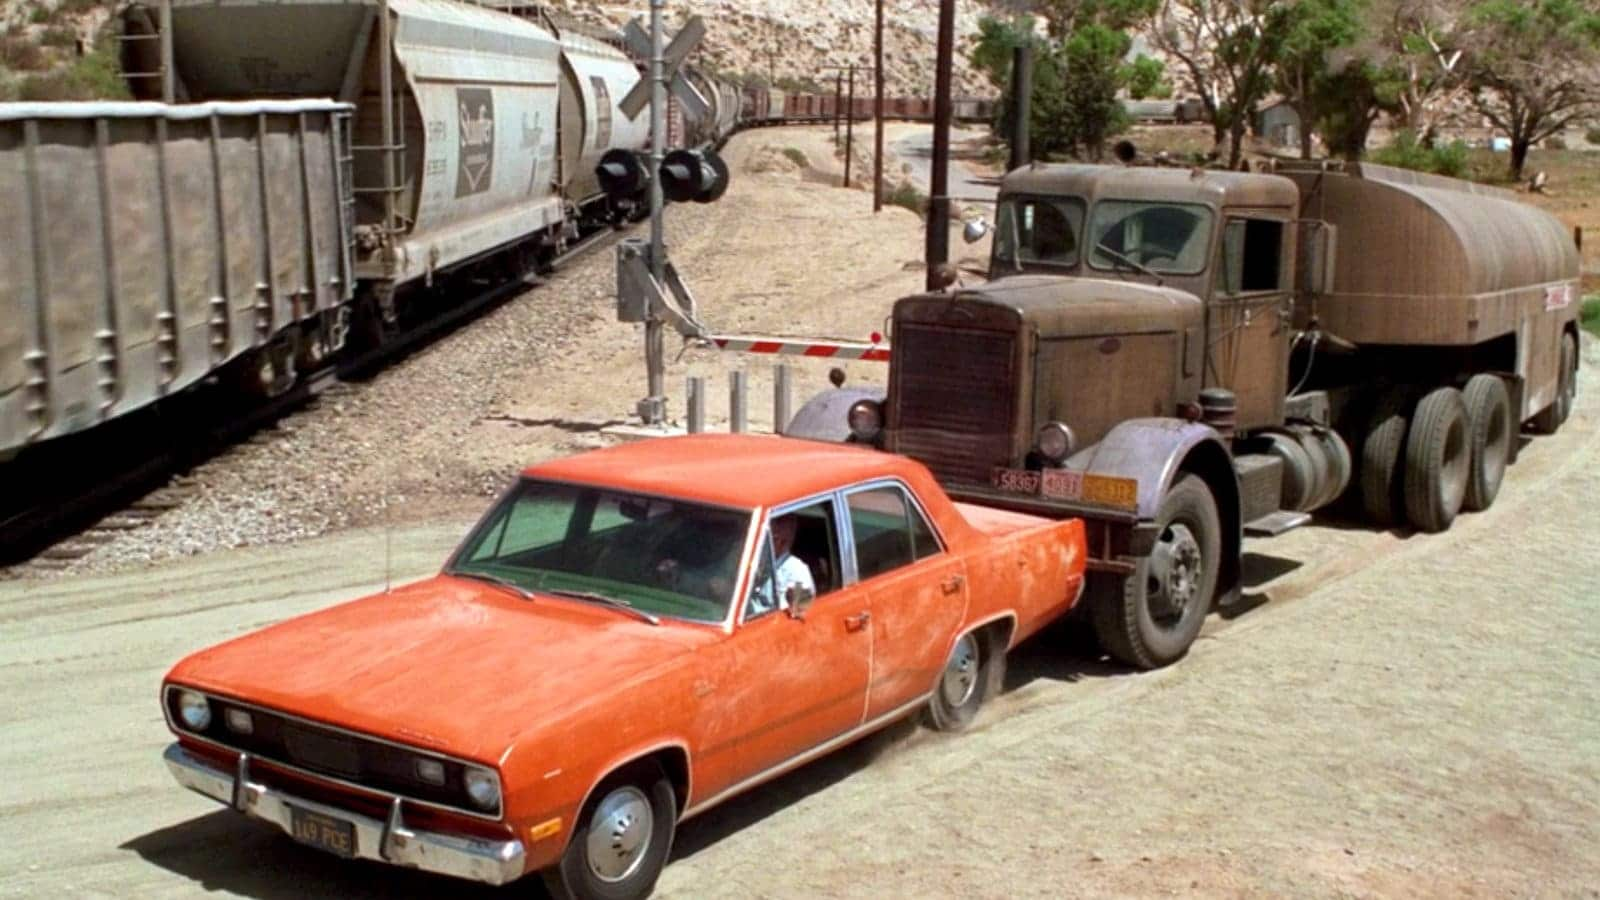 an image from Styeven Spielberg's film Duel